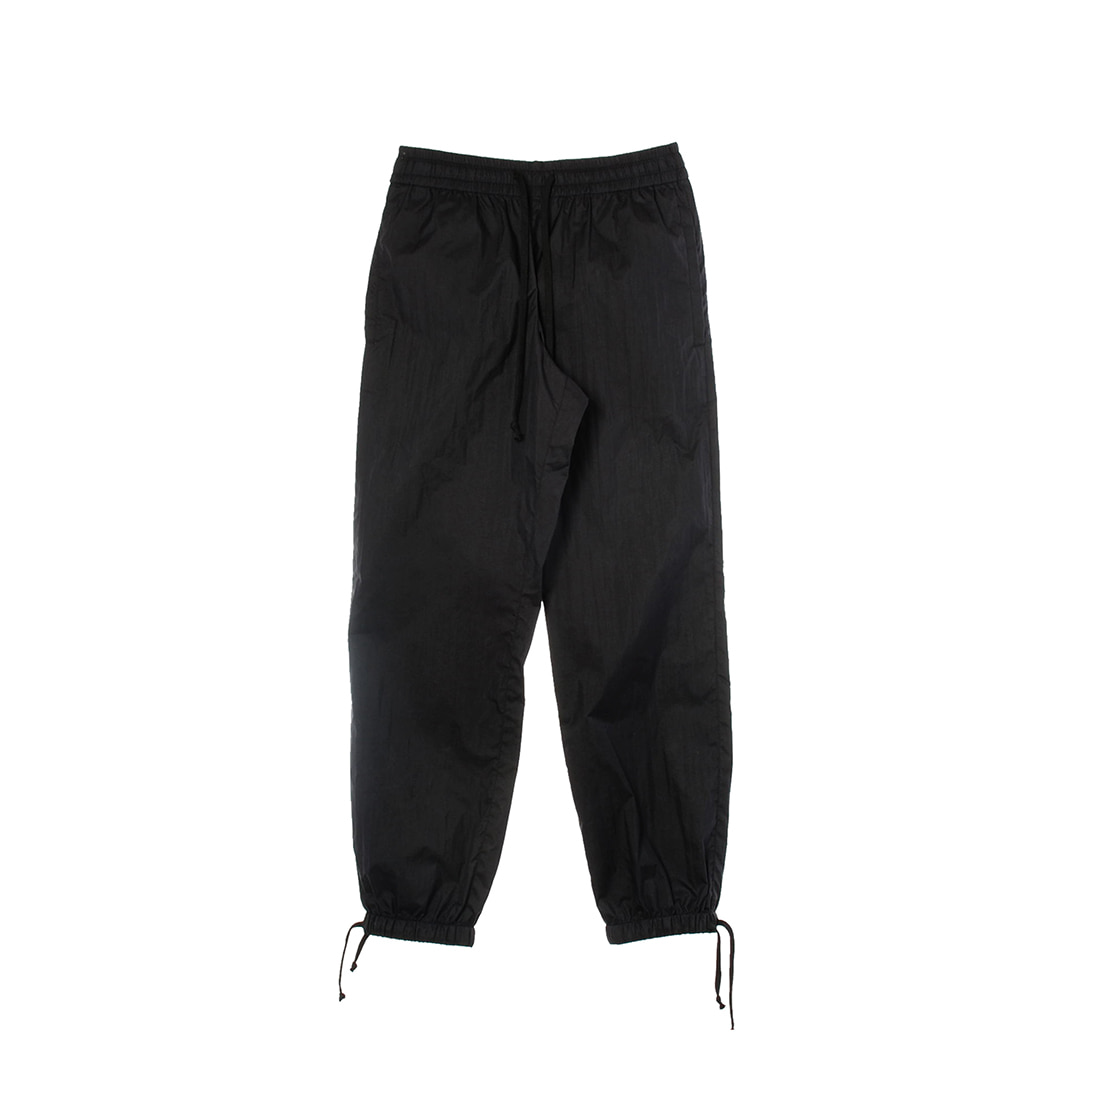 BLACK FUTURE VINTAGE JOGGER PANTS